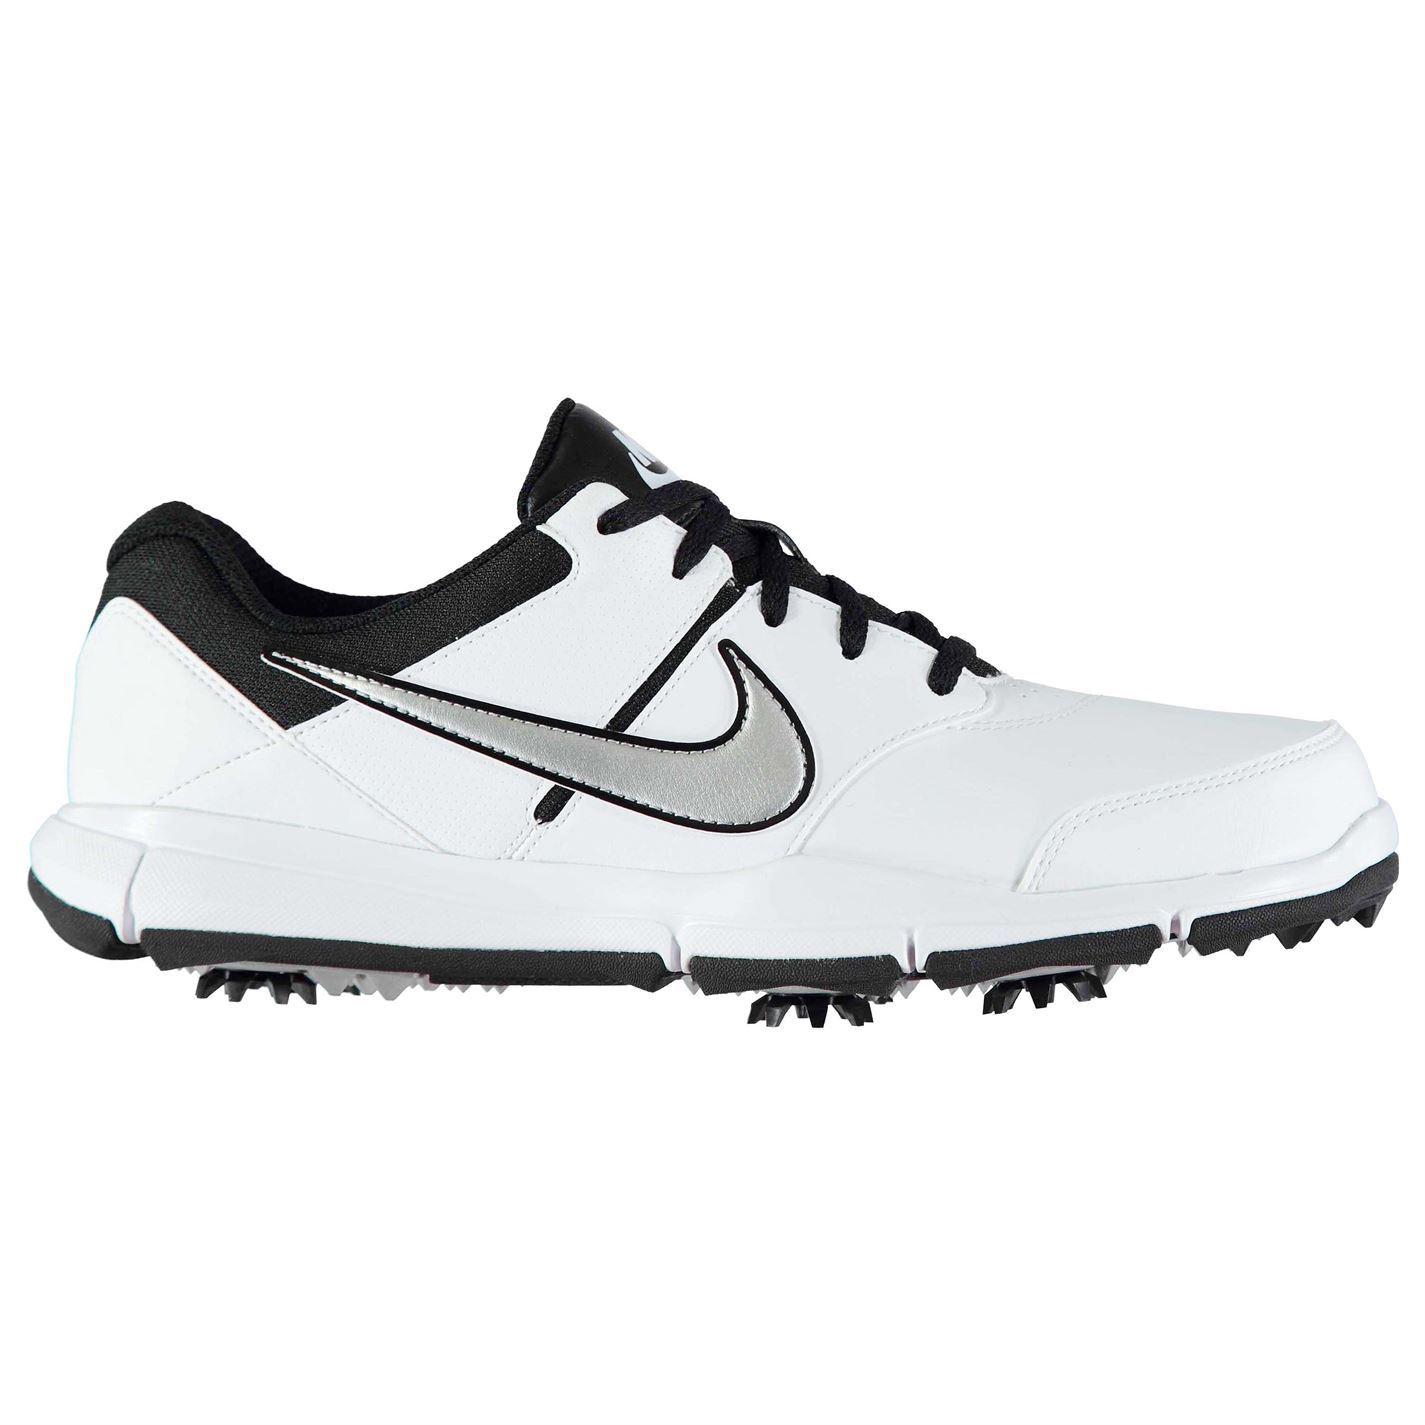 Nike-Durasport-4-Spiked-Golf-Shoes-Mens-Spikes-Footwear thumbnail 19